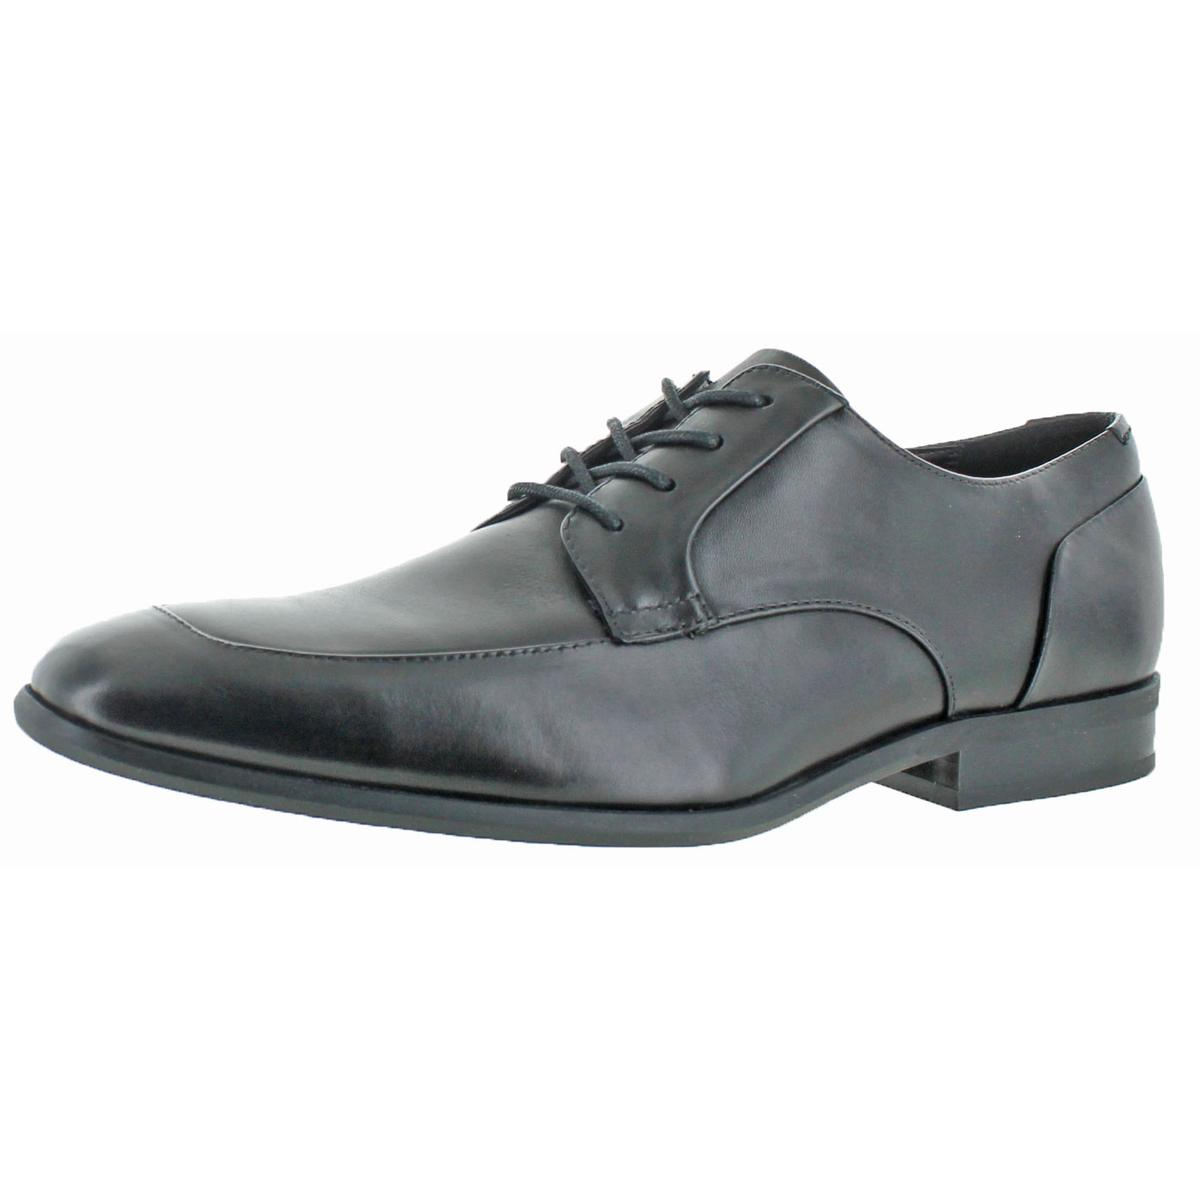 Calvin Klein Men's Lazarus Calf Leather Dress Oxford Derby Shoe Black Size 9